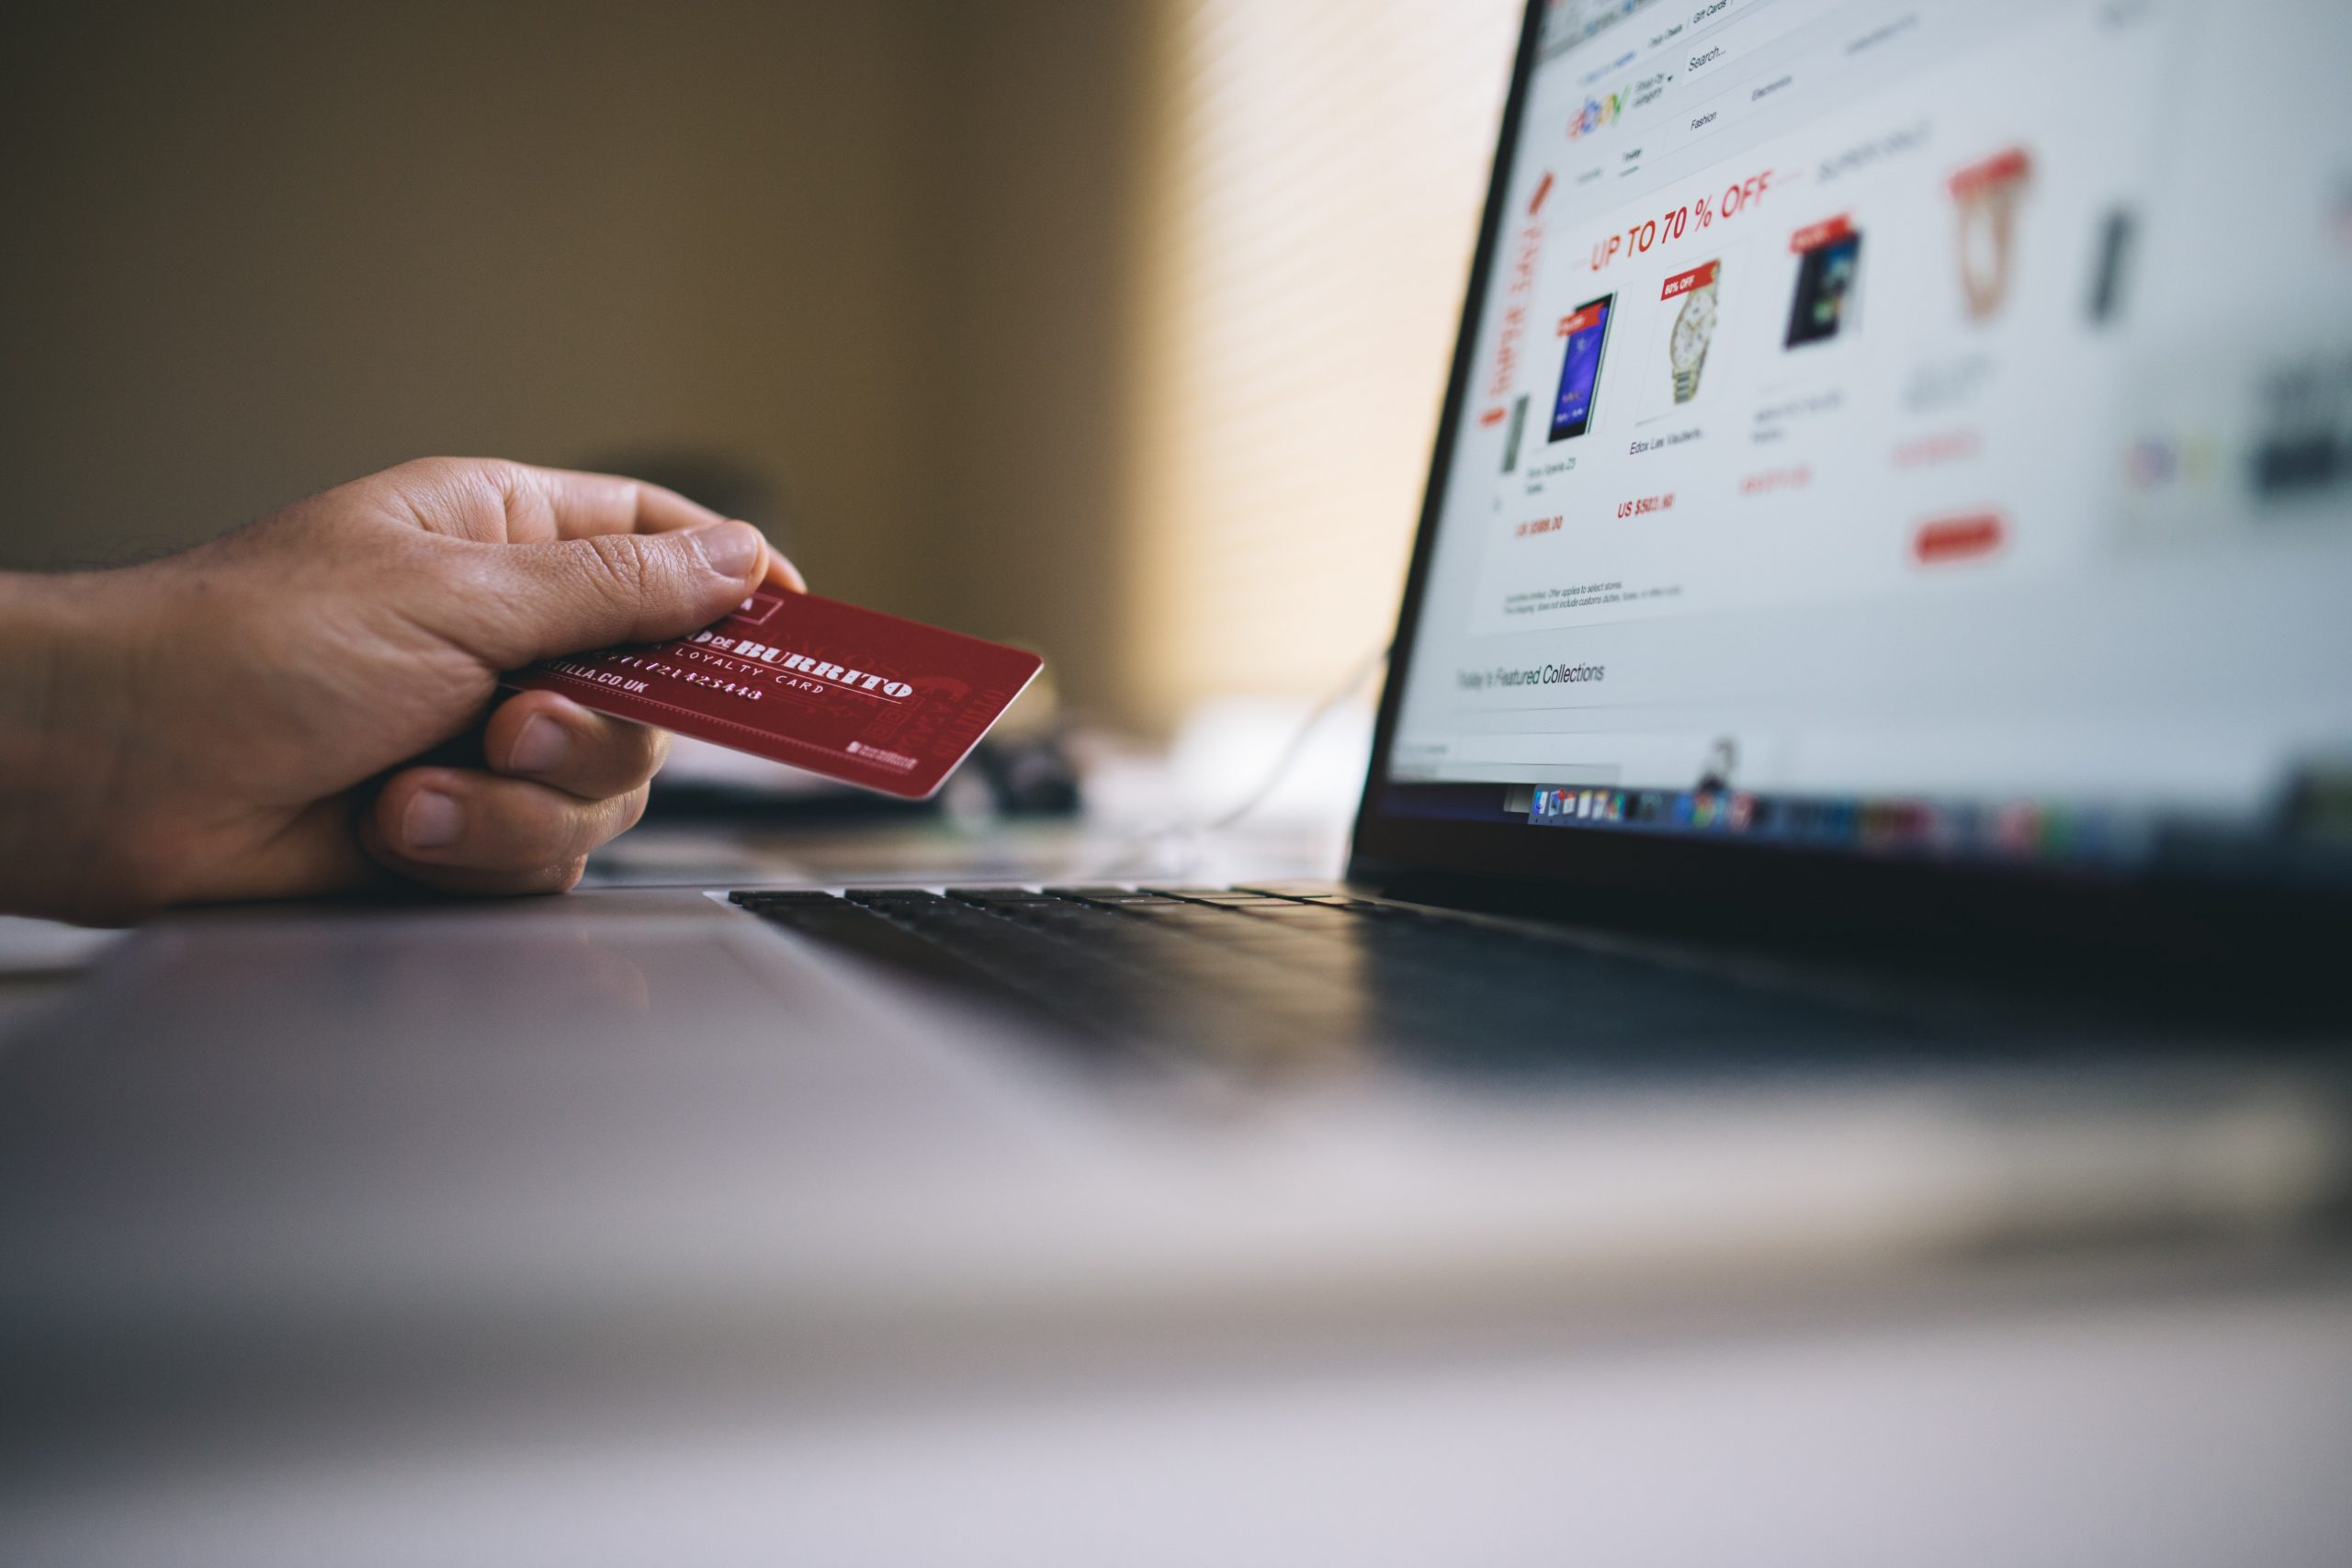 Buying from an e-commerce provider